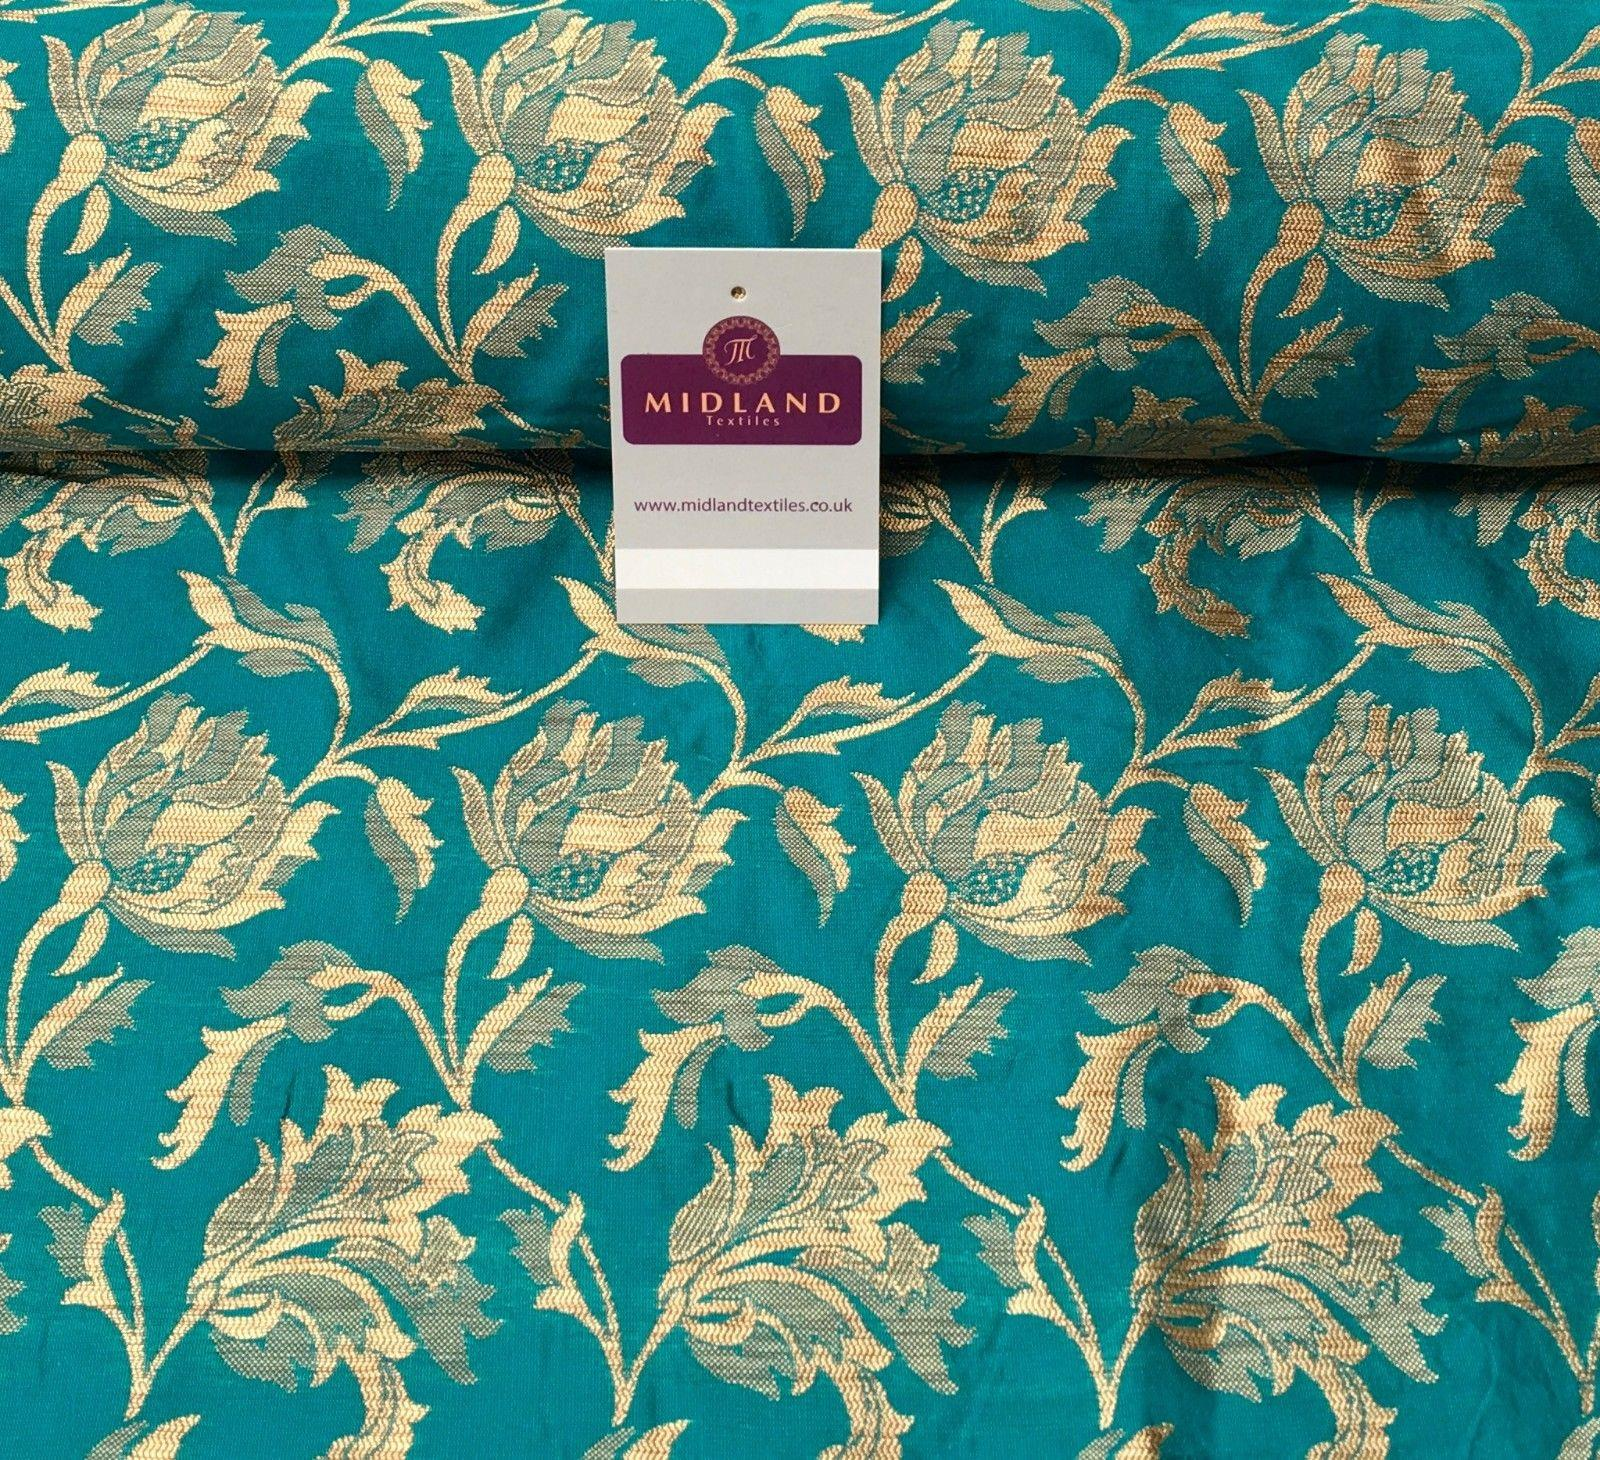 "Indian Gold Floral Banarsi Brocade Faux Silk Waistcoat Fabric 44"" Wide Mtex M833"